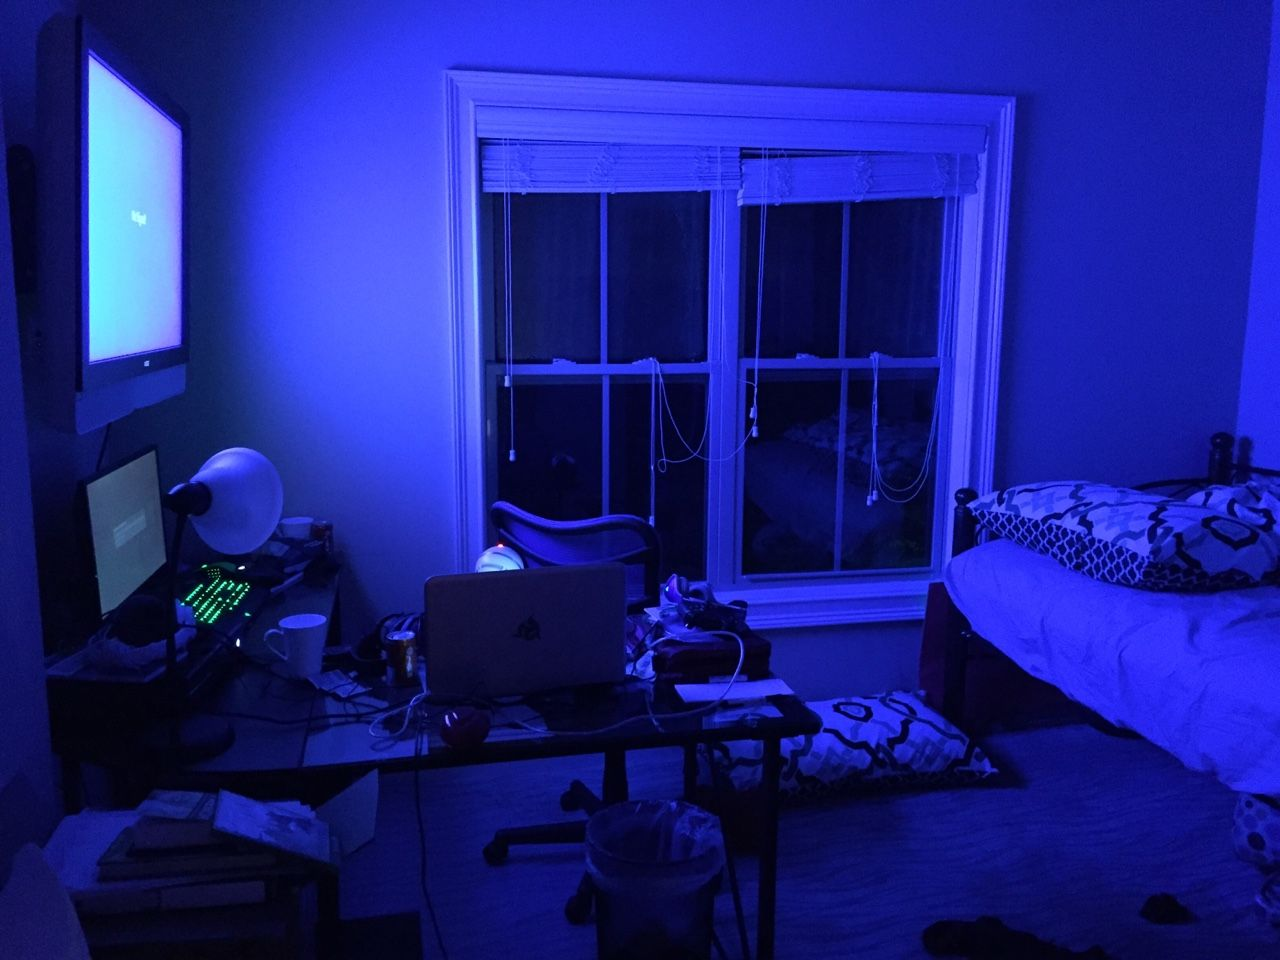 Cold Dreams Light Photography Cool Lighting Art Artistic Neon Aesthetic